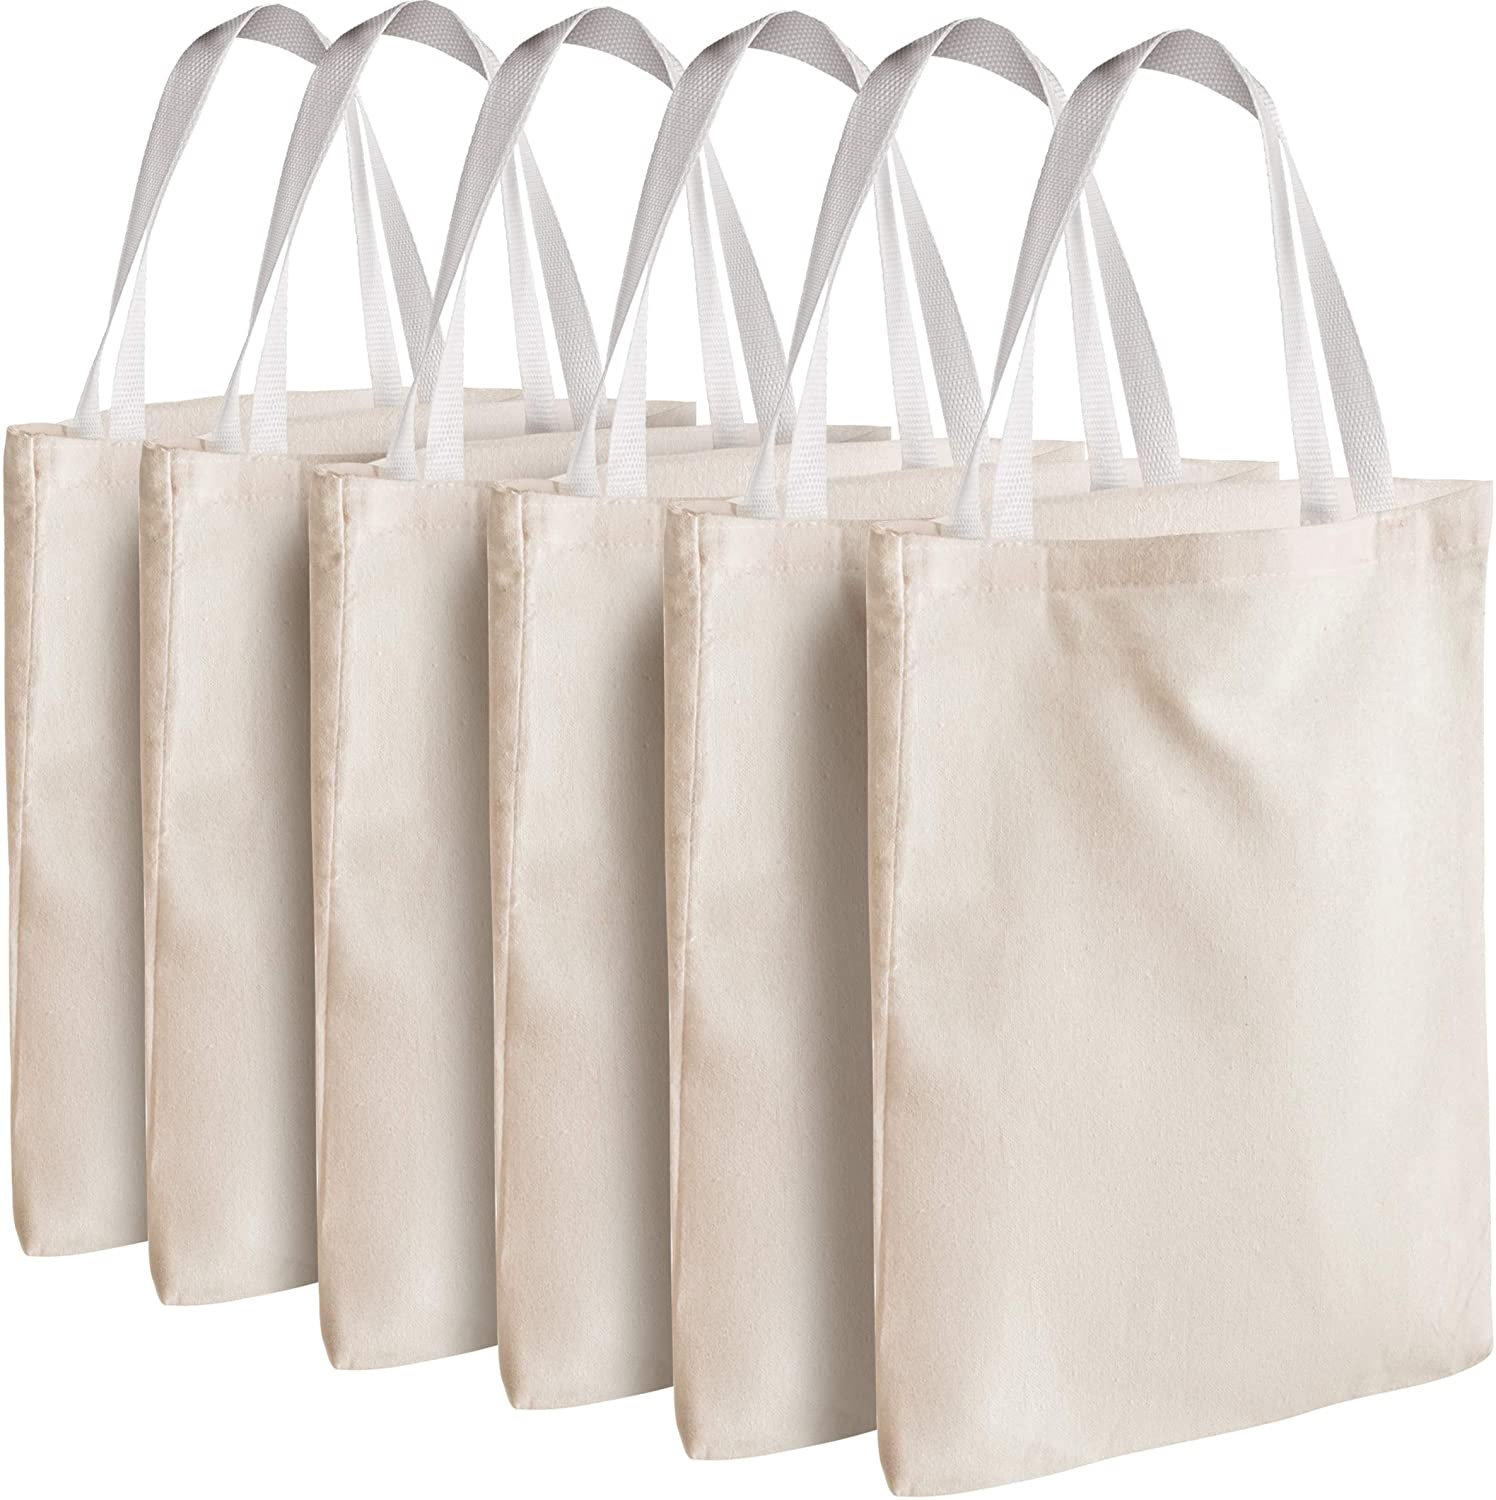 low-pricing Canvas Tote Bags - Bulk 12 Blank Fabric 12.75